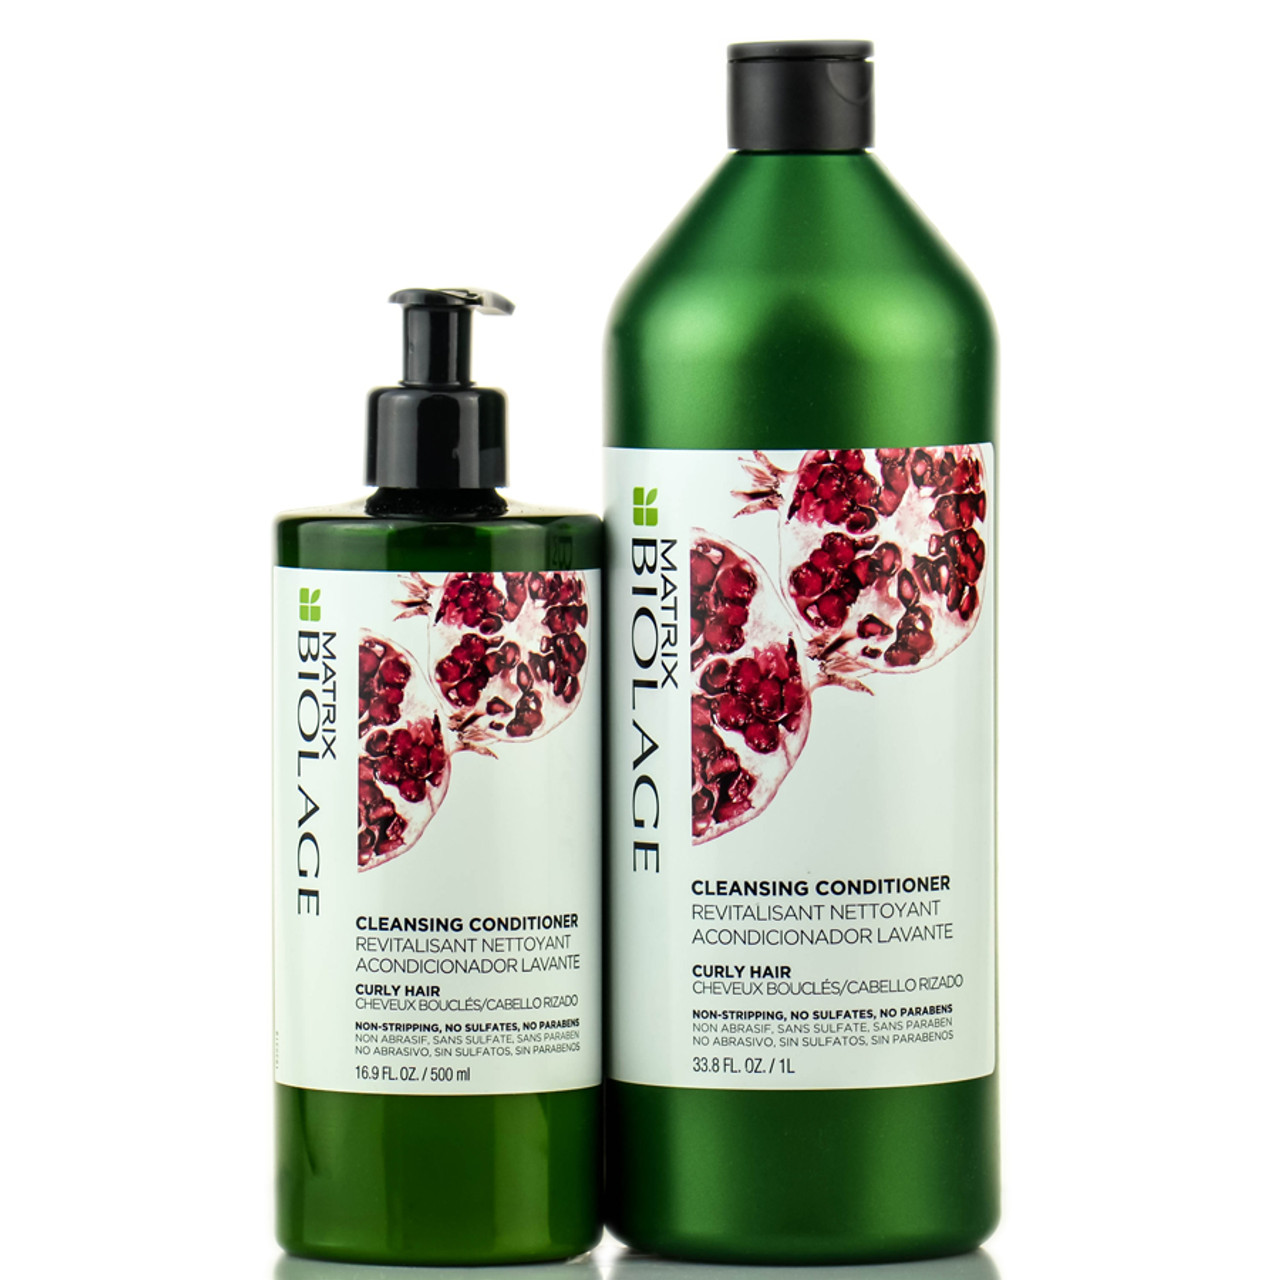 Matrix Biolage Cleansing Conditioner Curly Hair